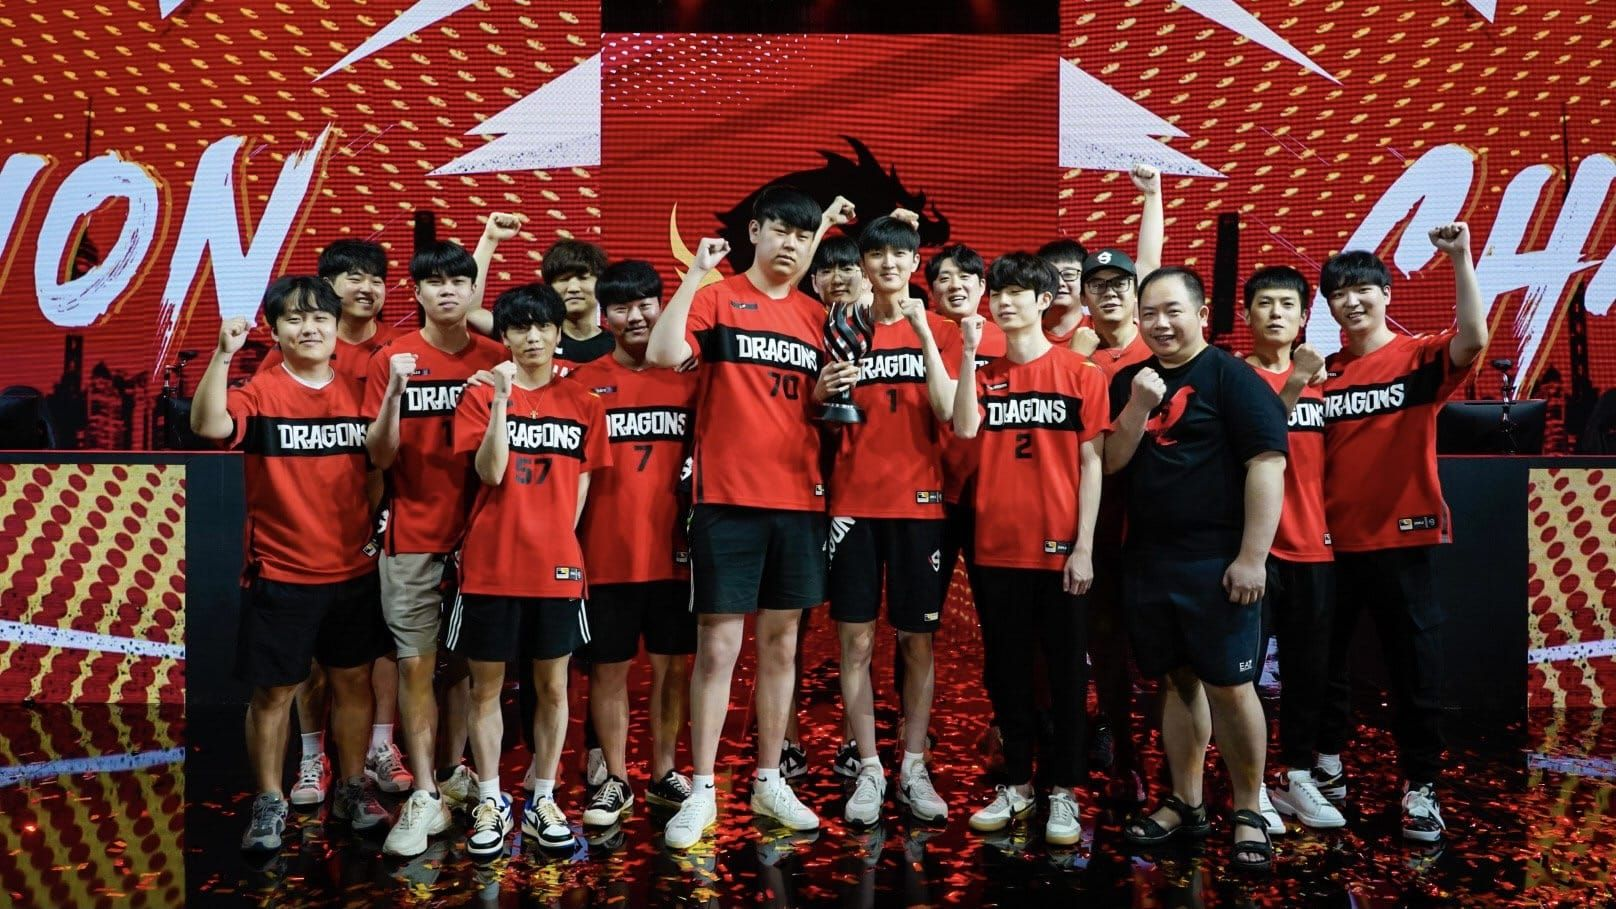 Shanghai Dragons Overwatch team on stage raise their hands up in the air after winning 2021 championship